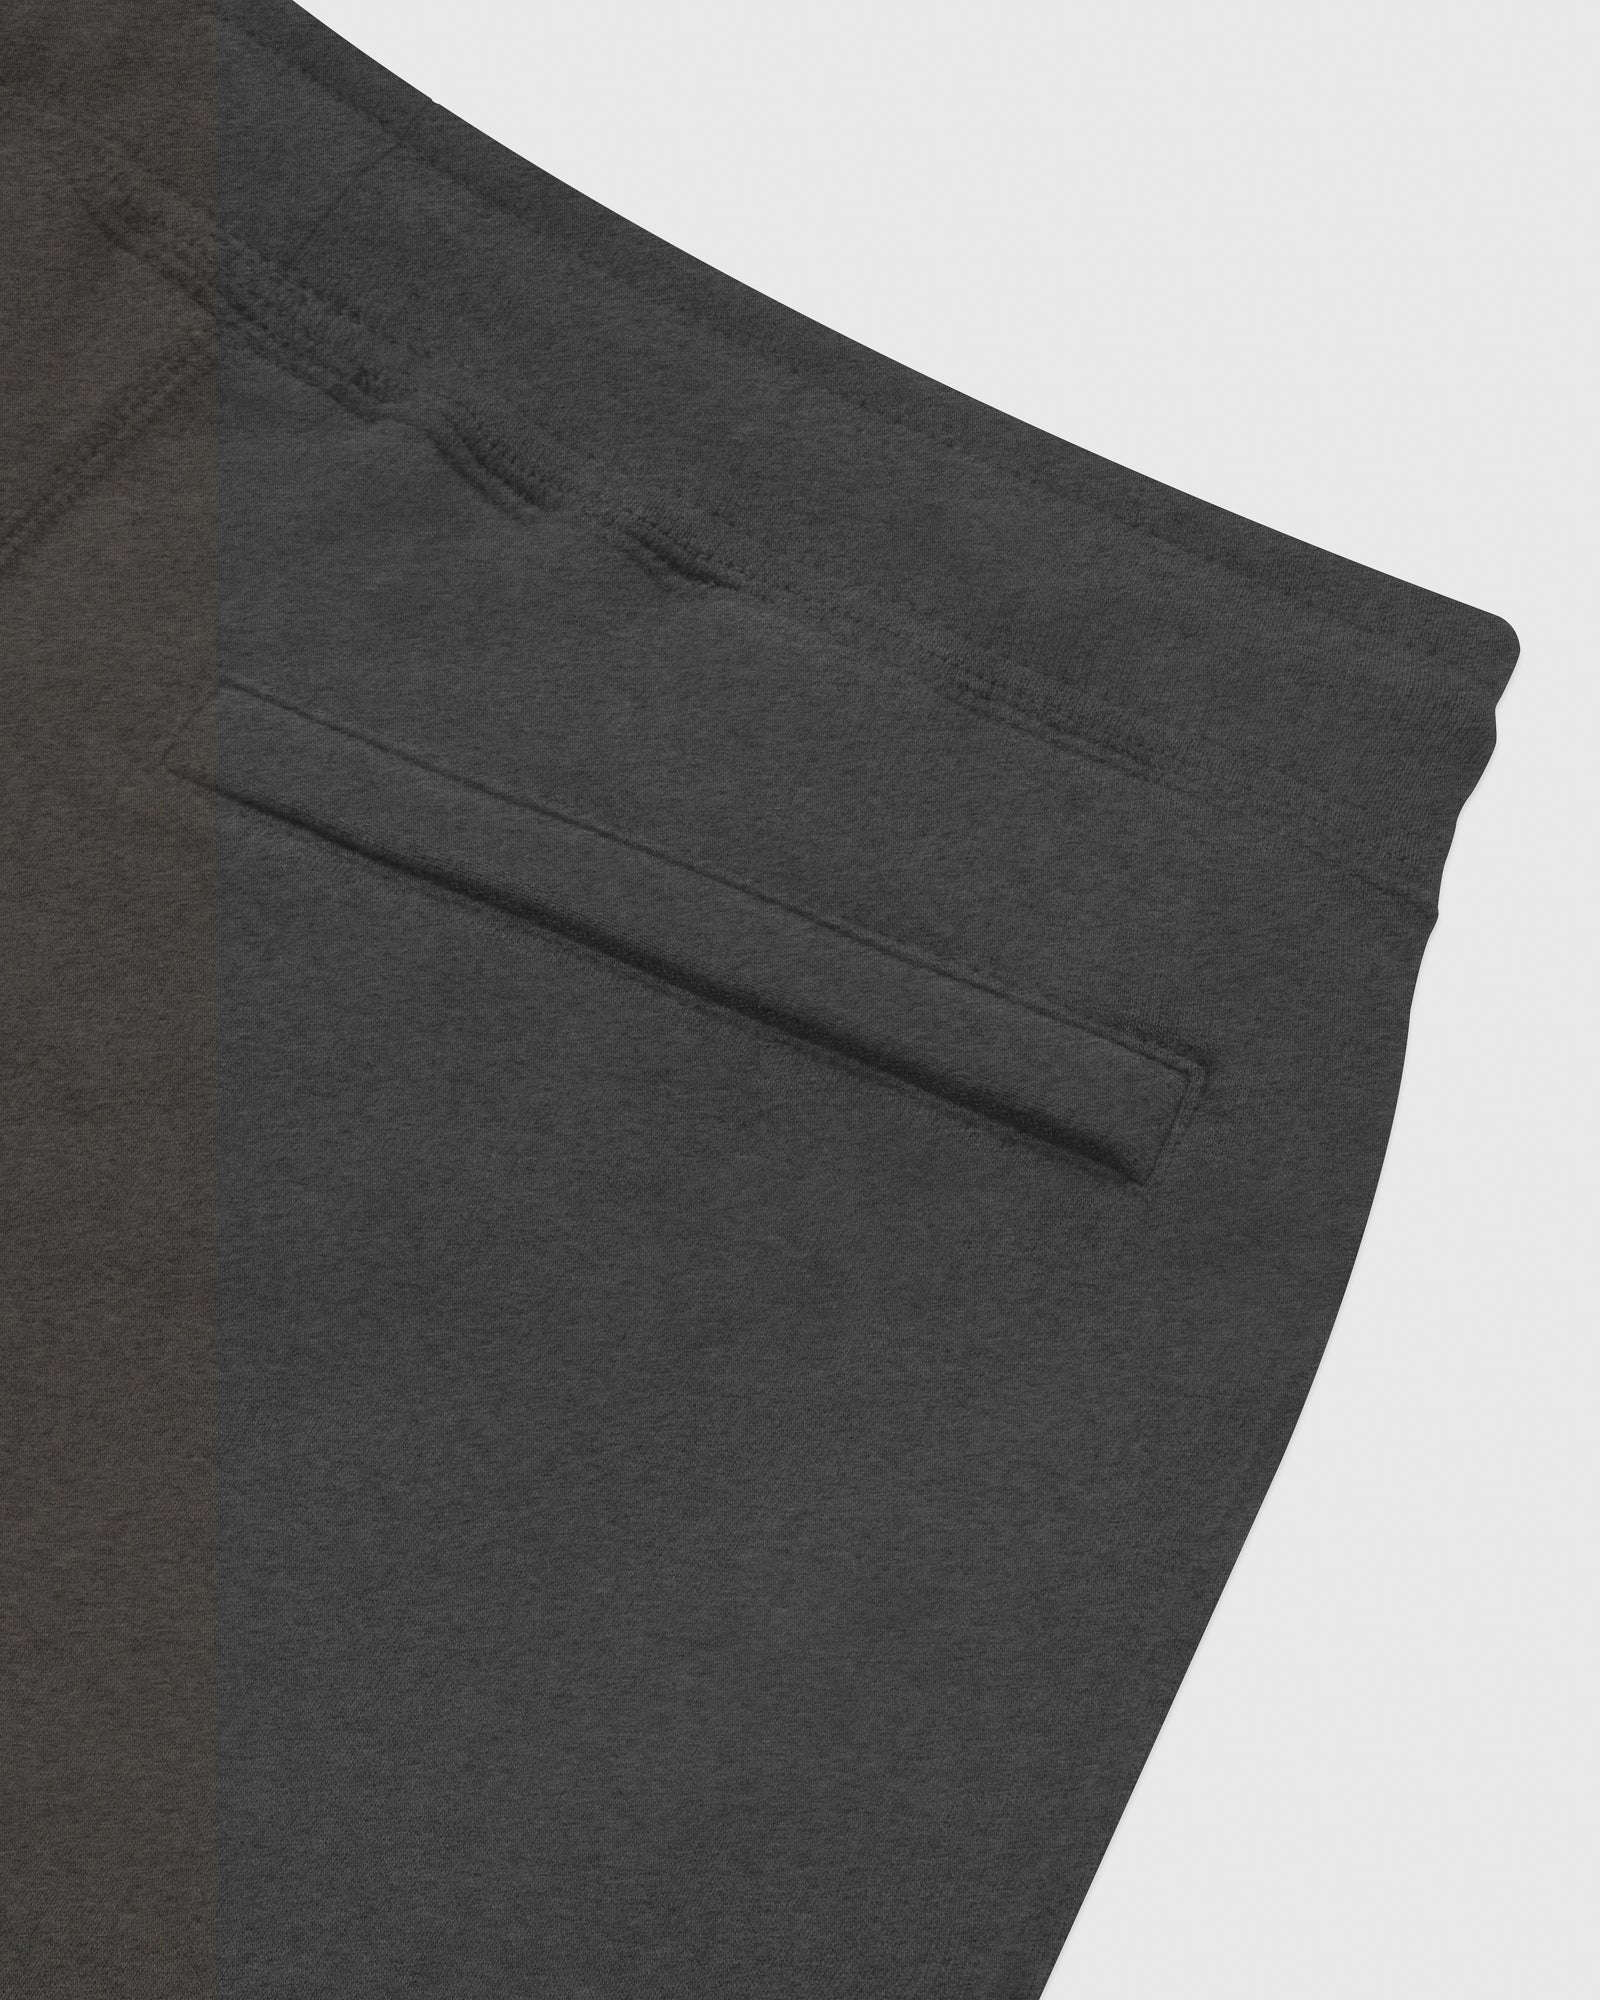 MID-WEIGHT FRENCH TERRY SWEATPANT - HEATHER CHARCOAL IMAGE #6